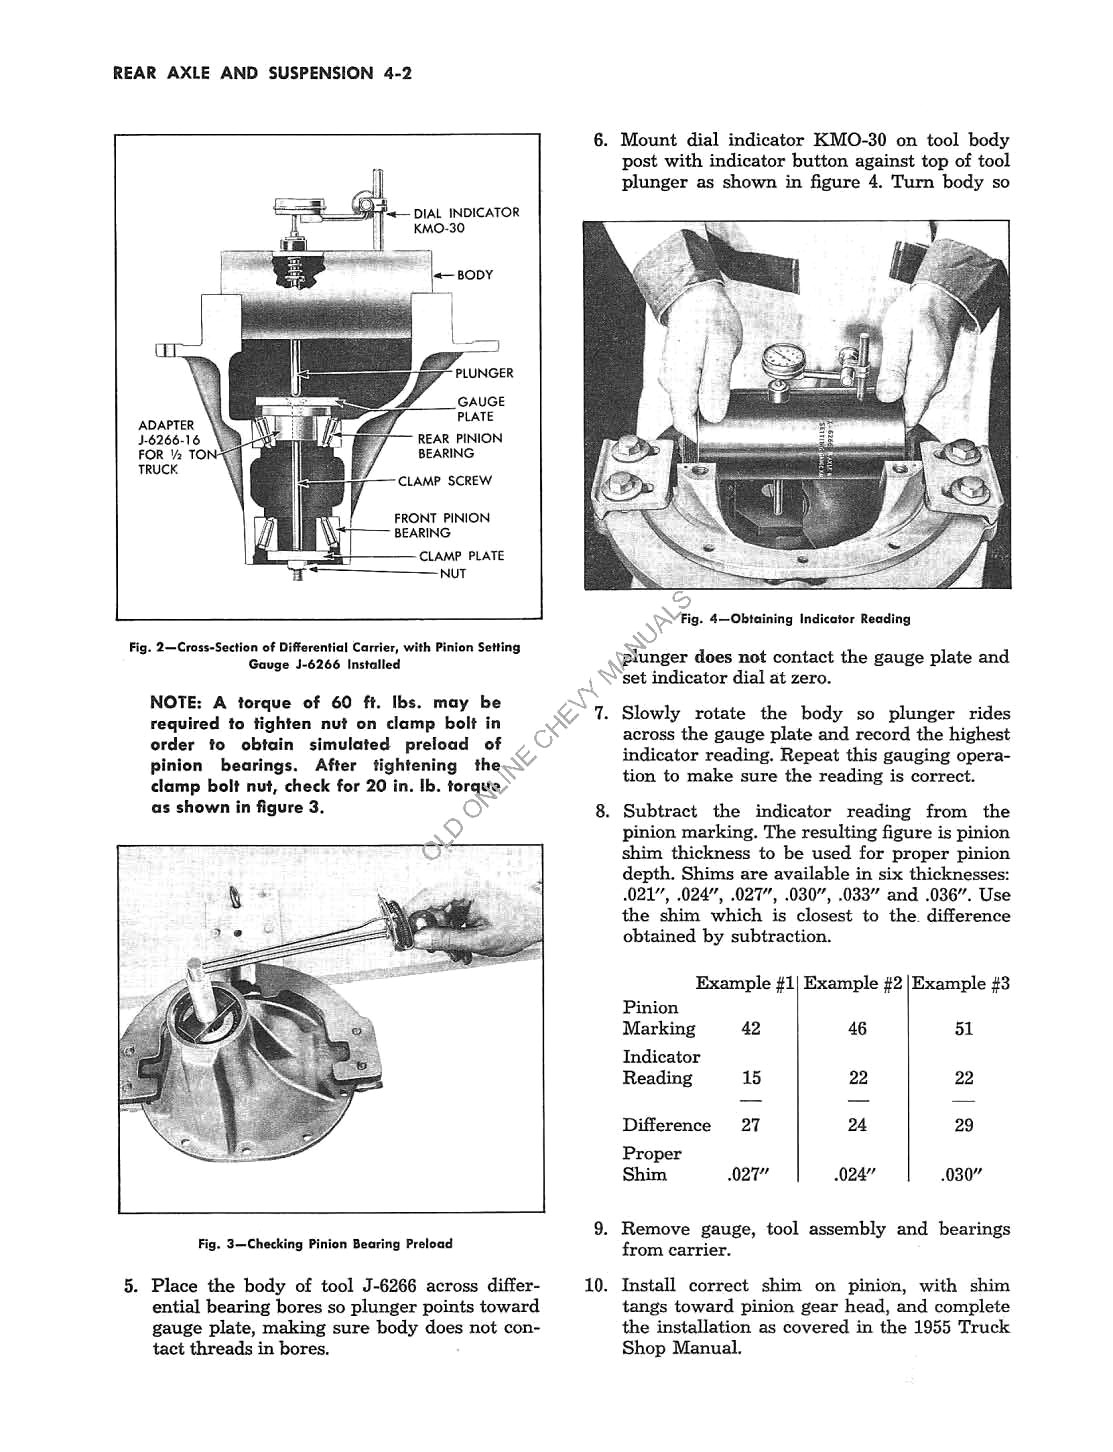 1956 Supplement to the 1955 Chevrolet Truck Shop Manual